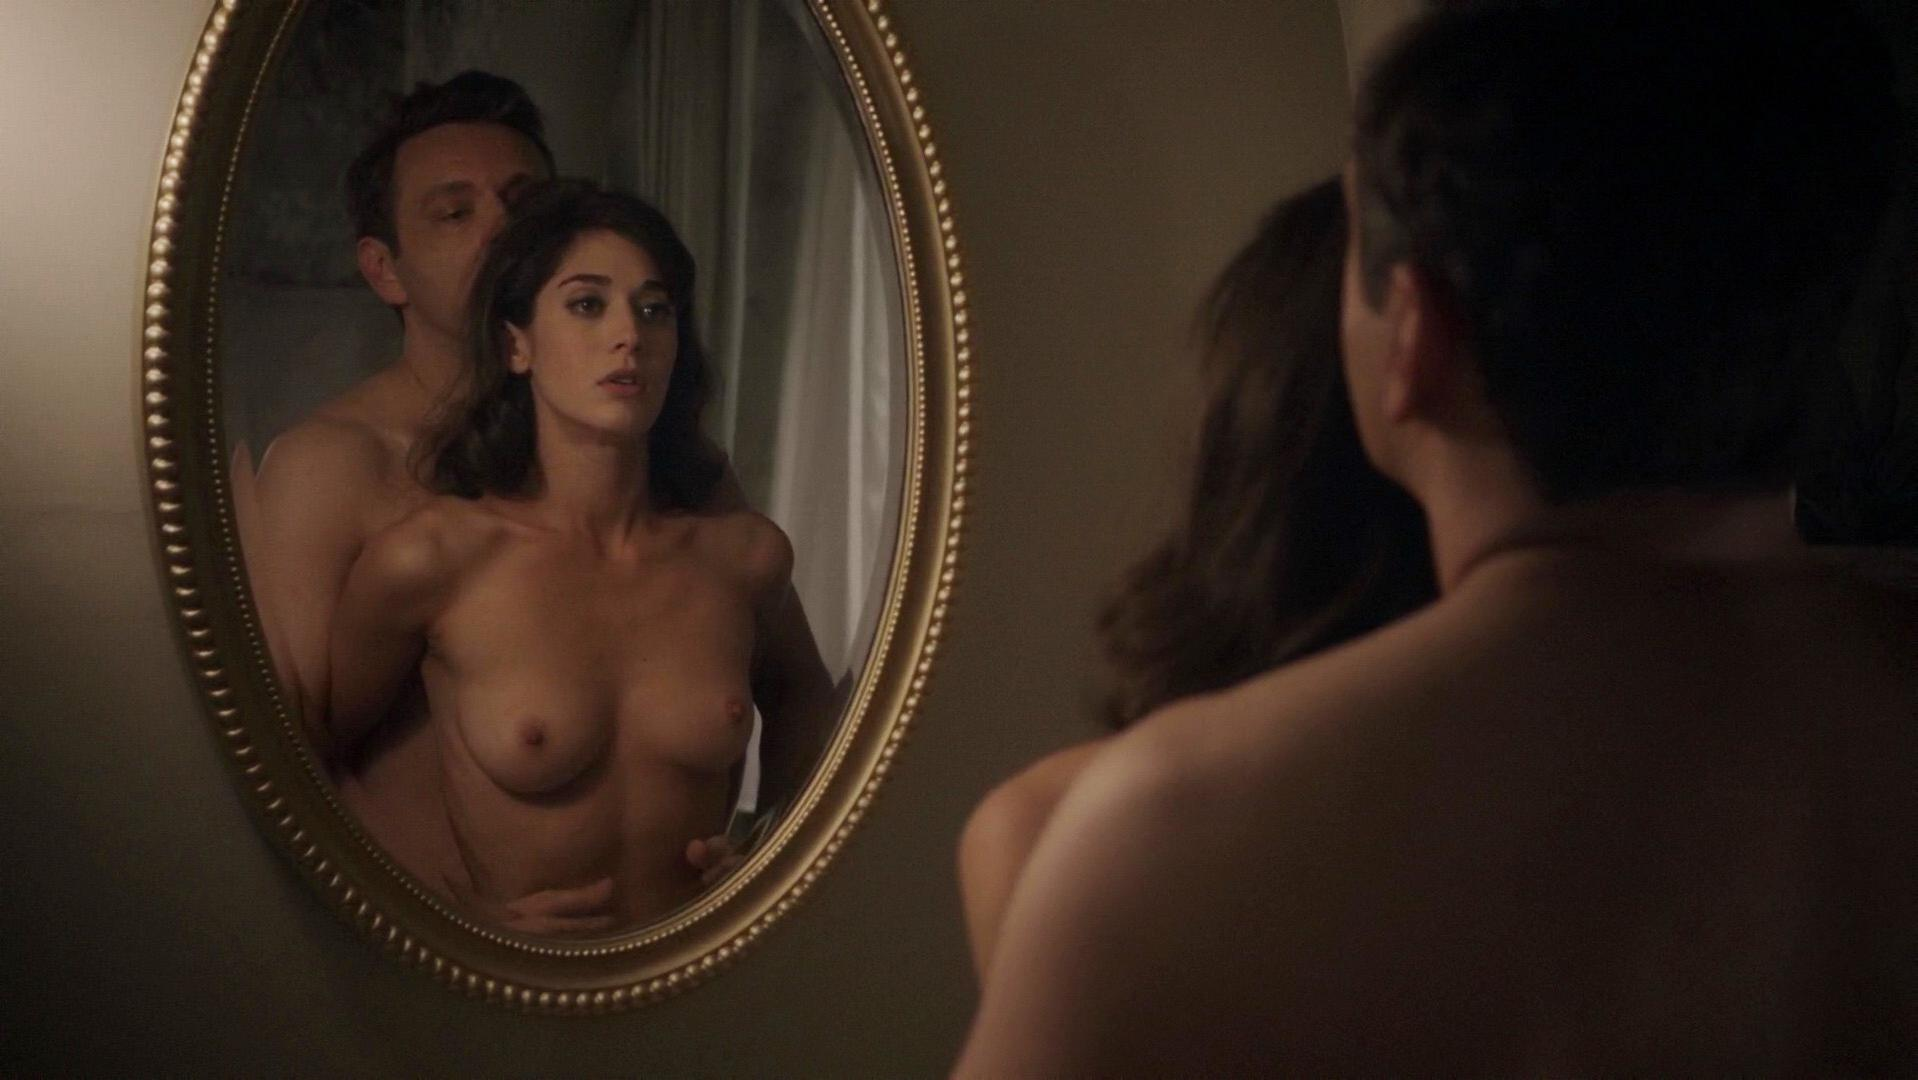 Lizzy Caplan nude - Masters of Sex s02e12 (2014)